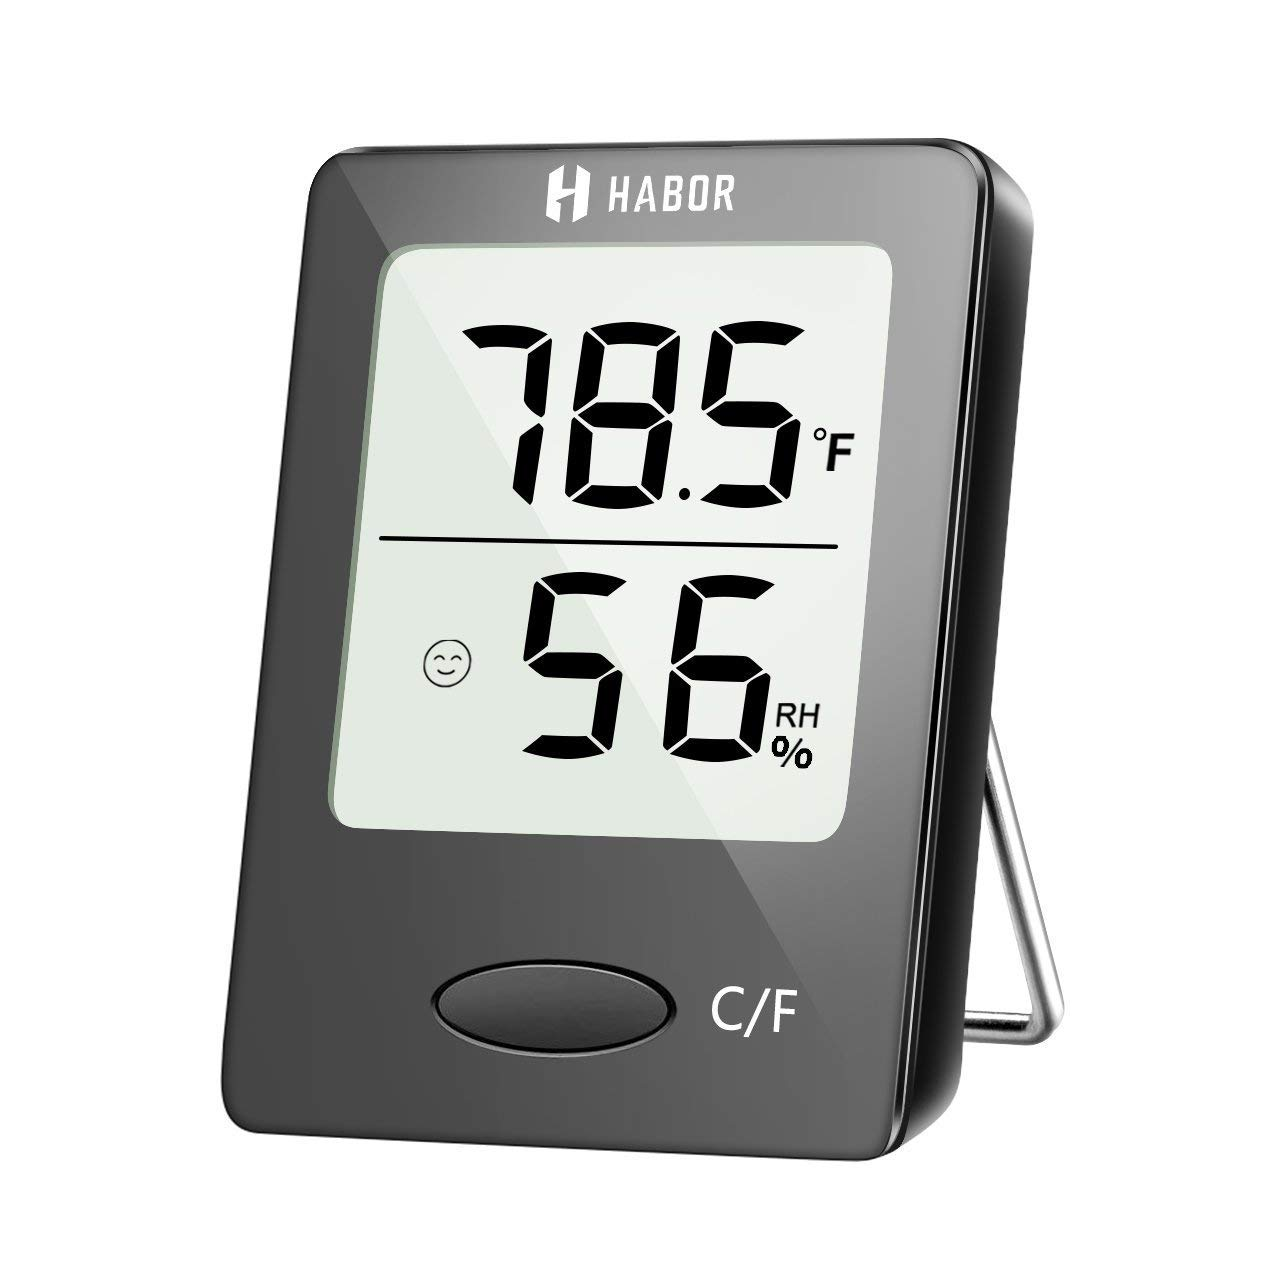 Habor Digital Thermometer Hygrometer , [Mini Style] Accurate Indoor Temperature and Humidity Meter Monitor with LCD Display for Home Office Comfort, Lifetime Replacement Guarantee (Black) TKHBHM118AB-UKVV2